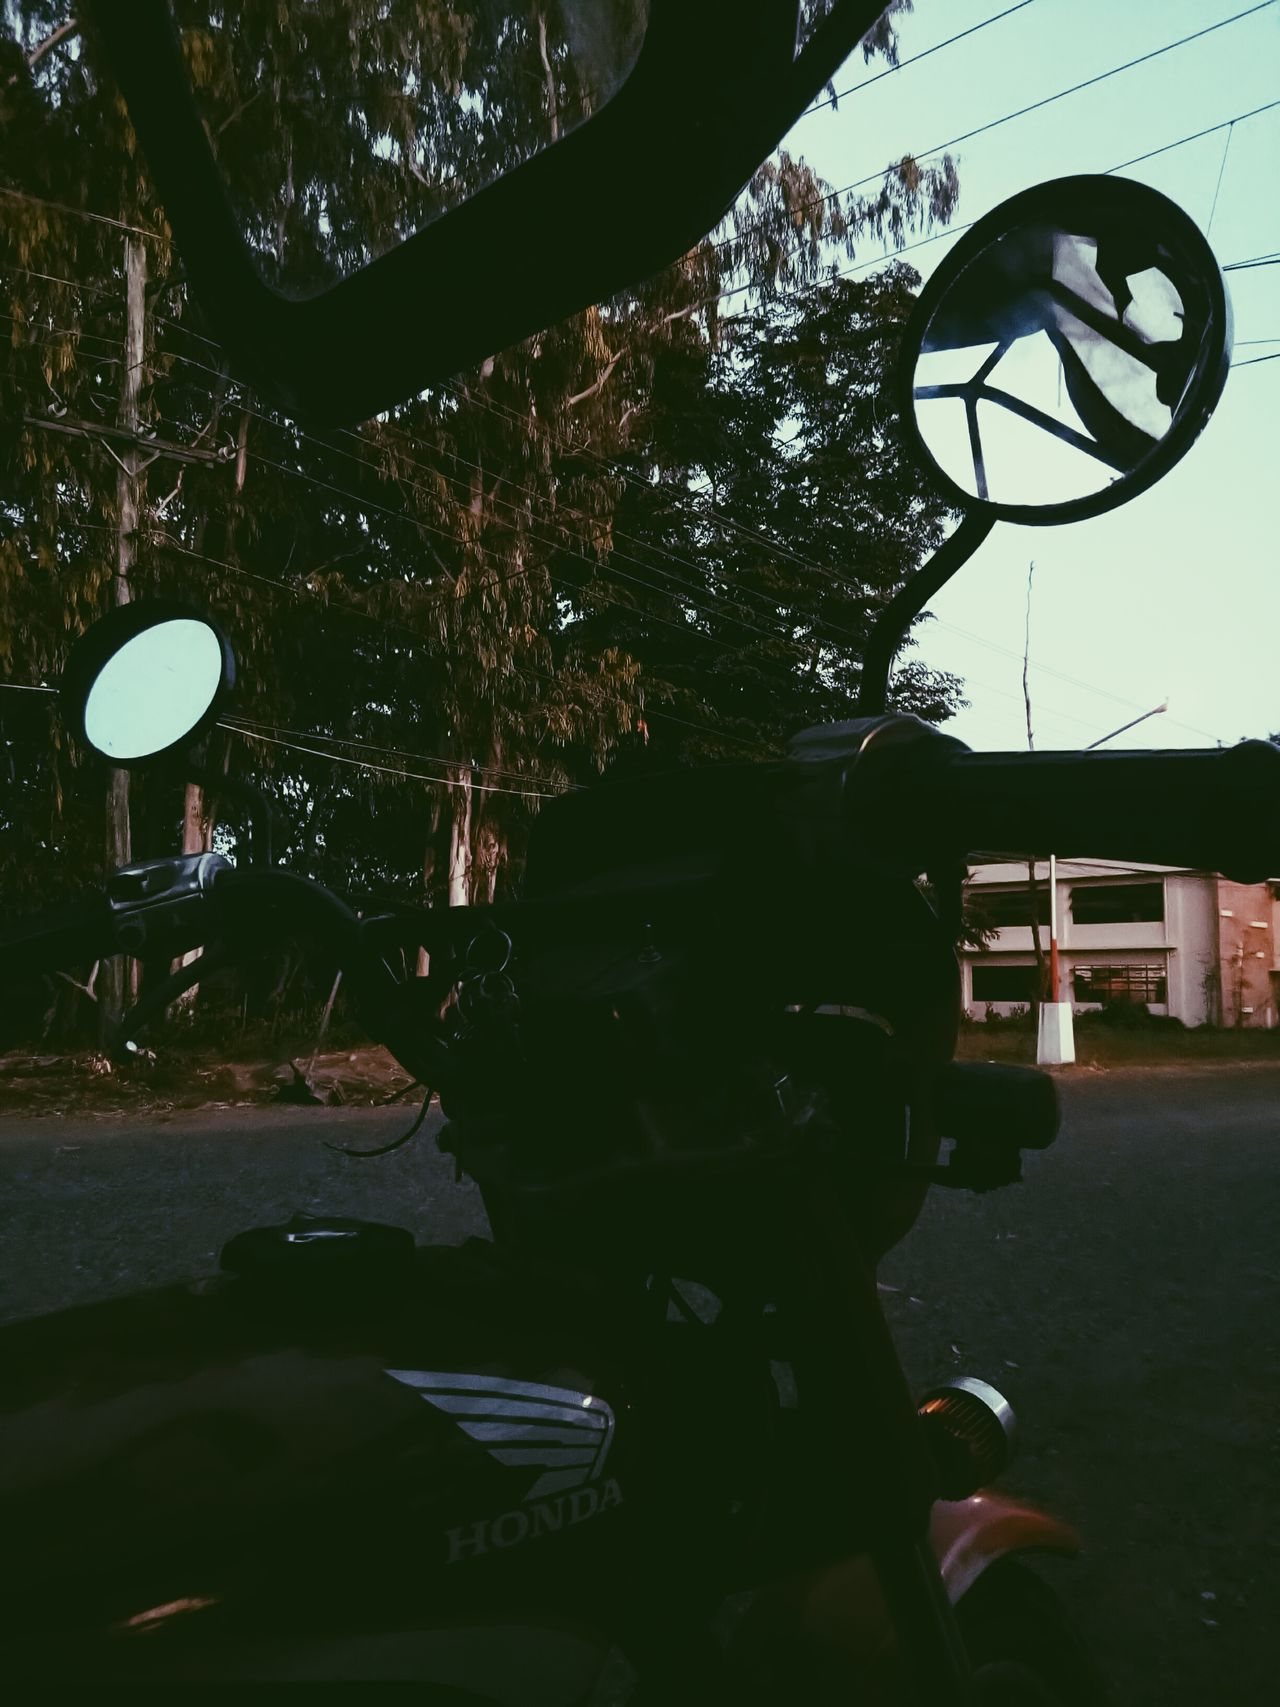 Late Afternoon Shadows Motorcyle Nature Trees Cable Wires Outdoors No People